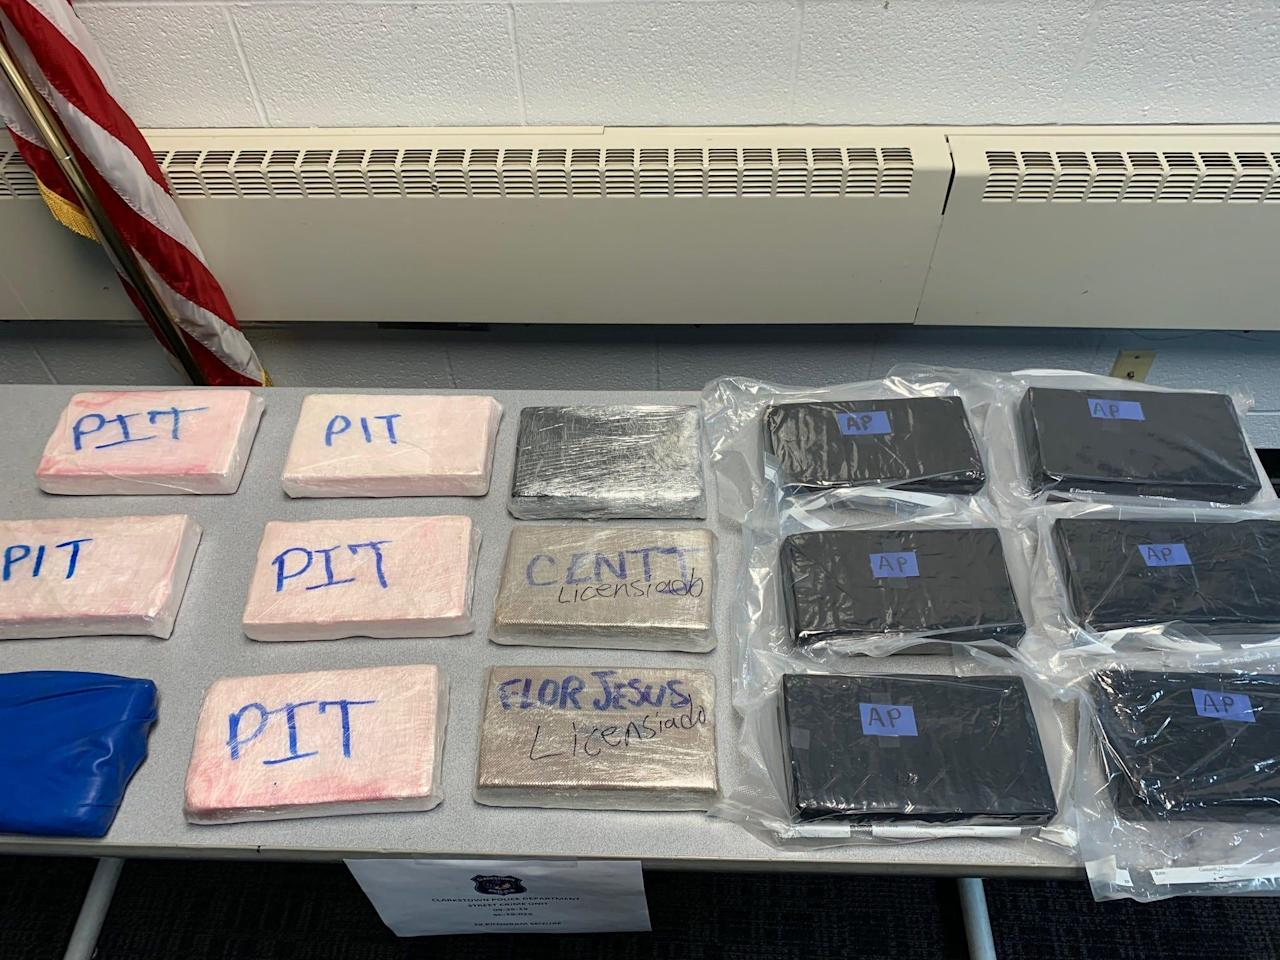 Three New York men charged in major drug ring bust: Country's largest seizure of carfentanil, police said